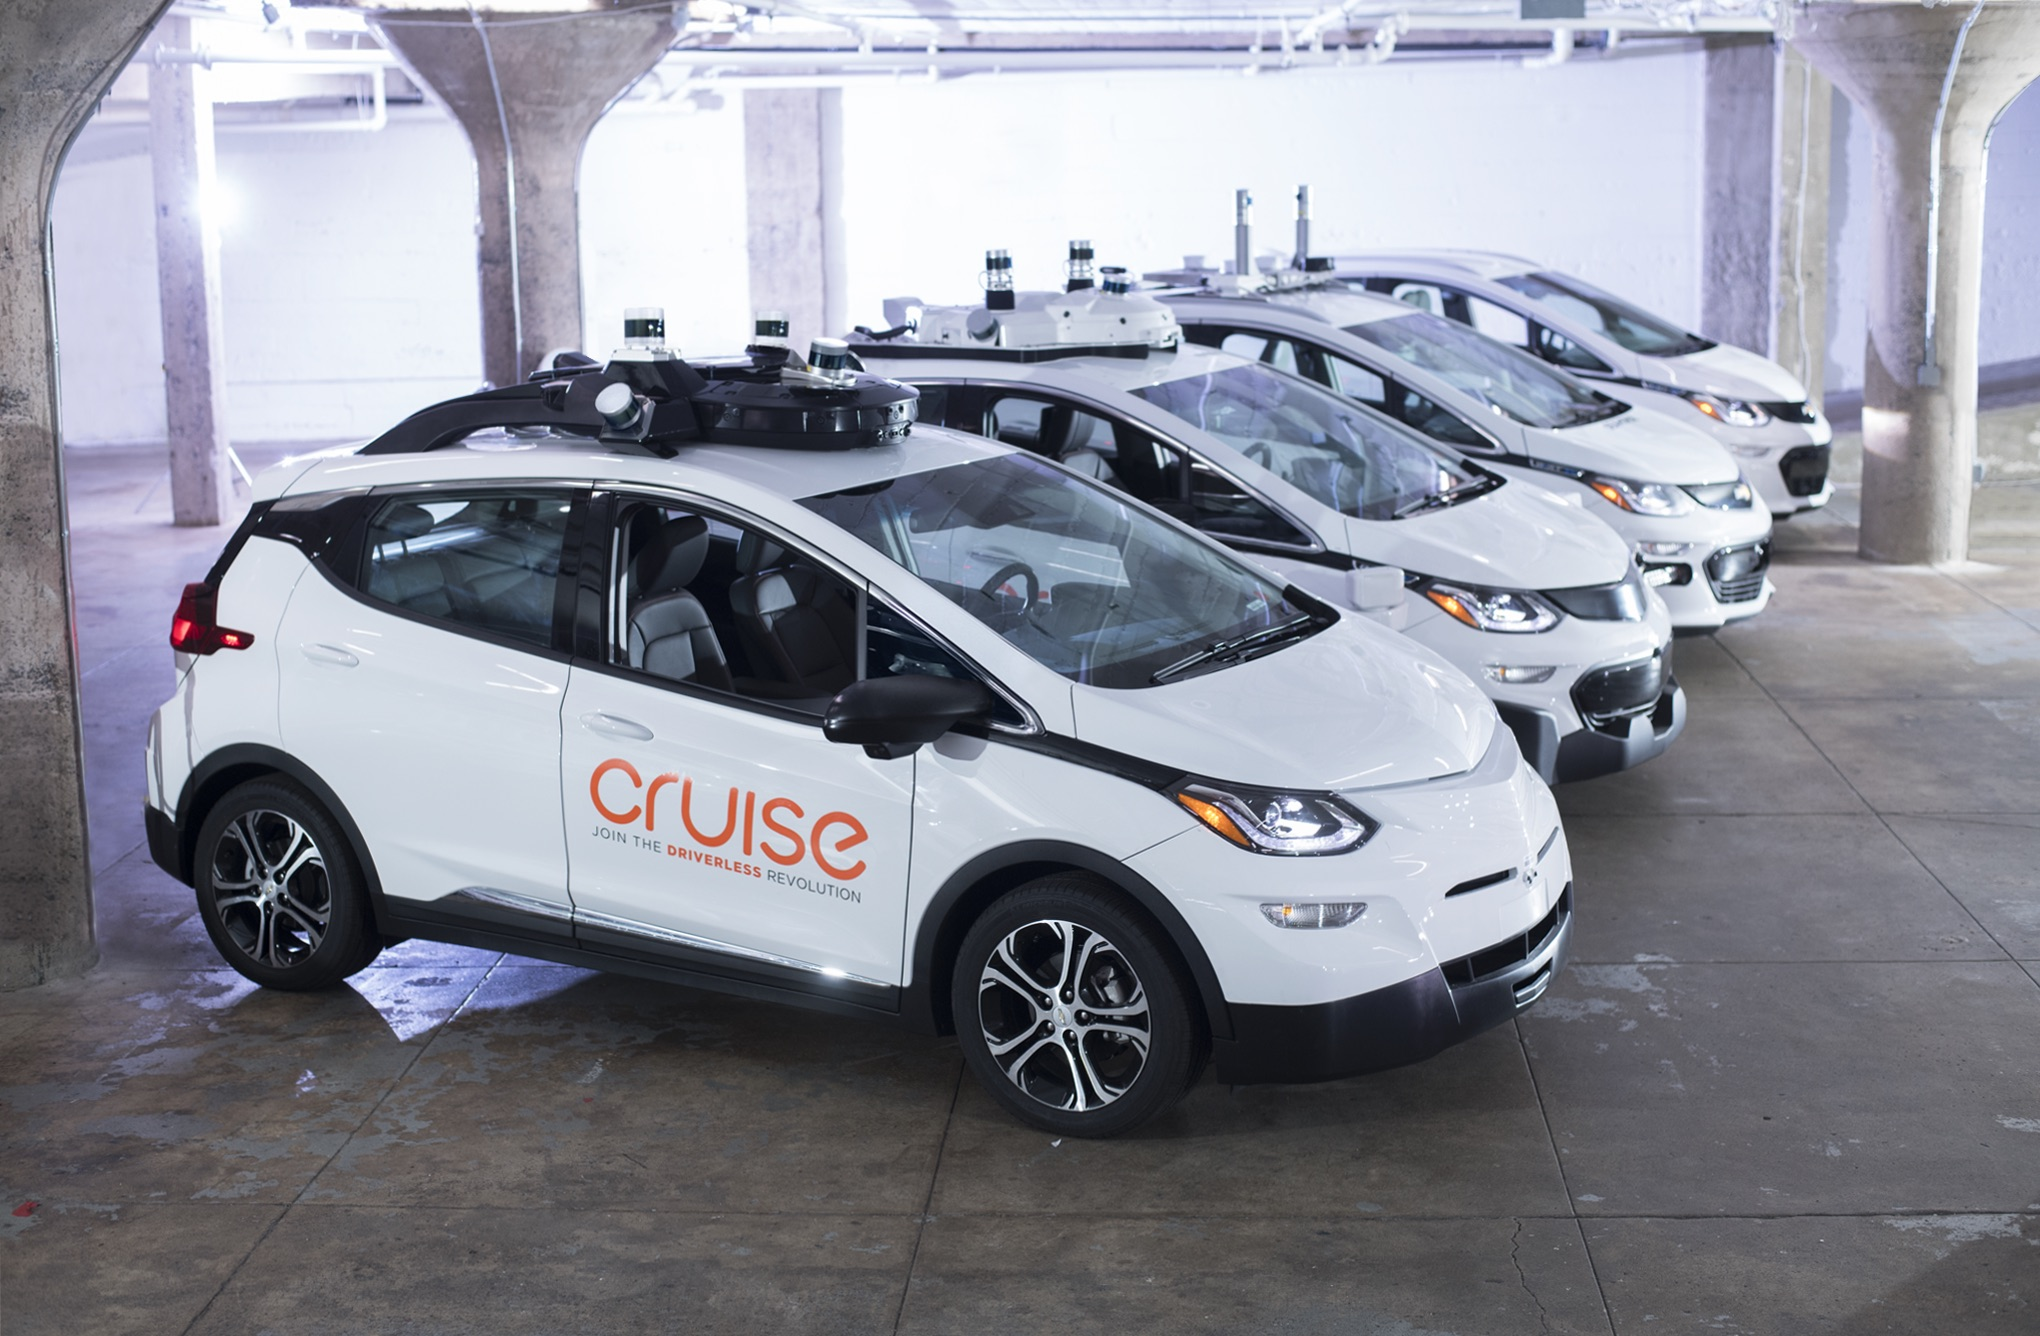 Cruise Automation, the self-driving car unit under GM, plans to test its tech in New York City.